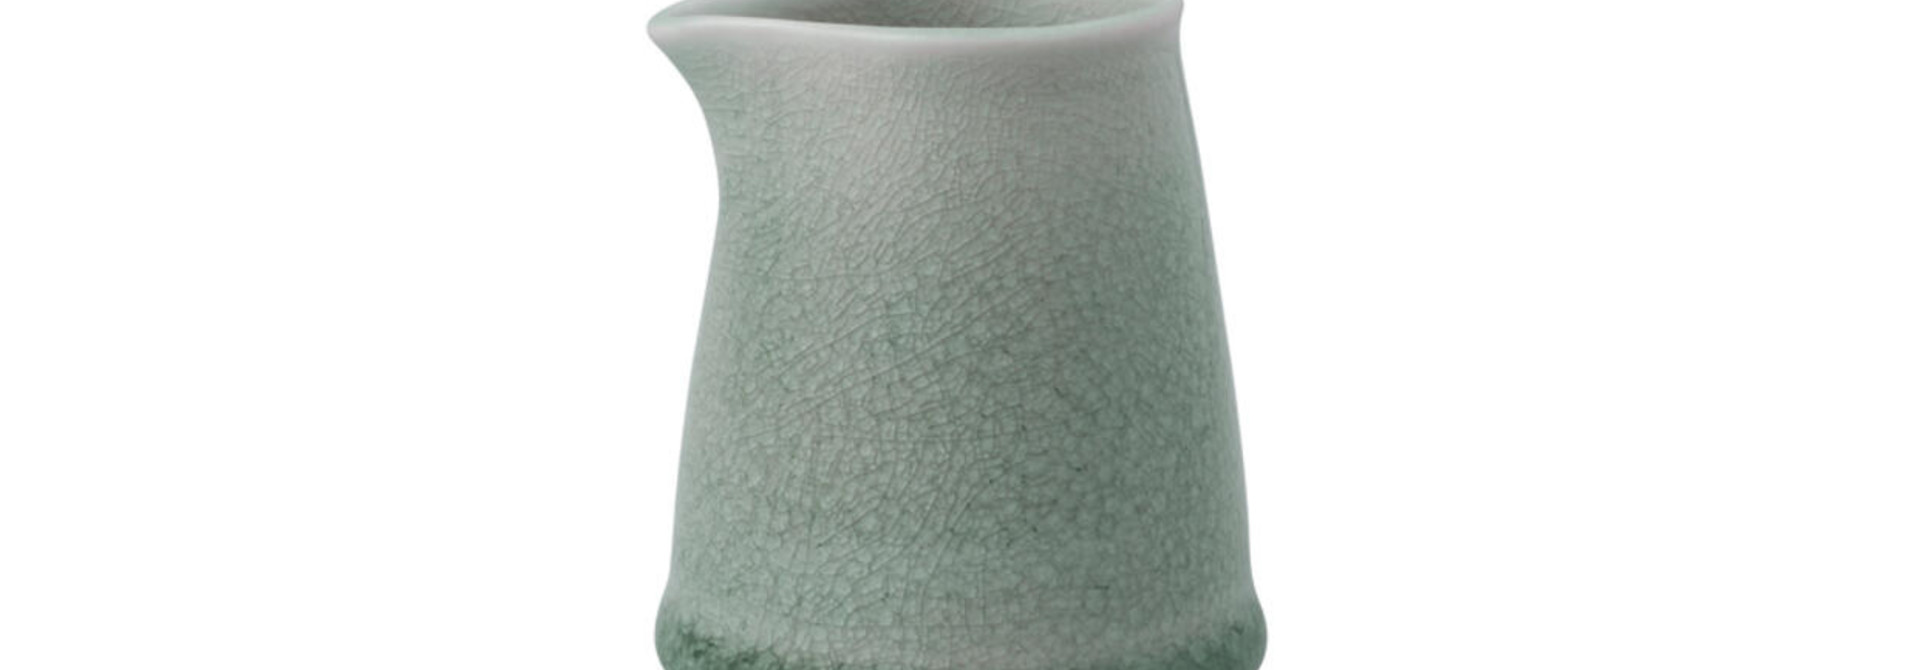 Creamer - Maguelone - Gris